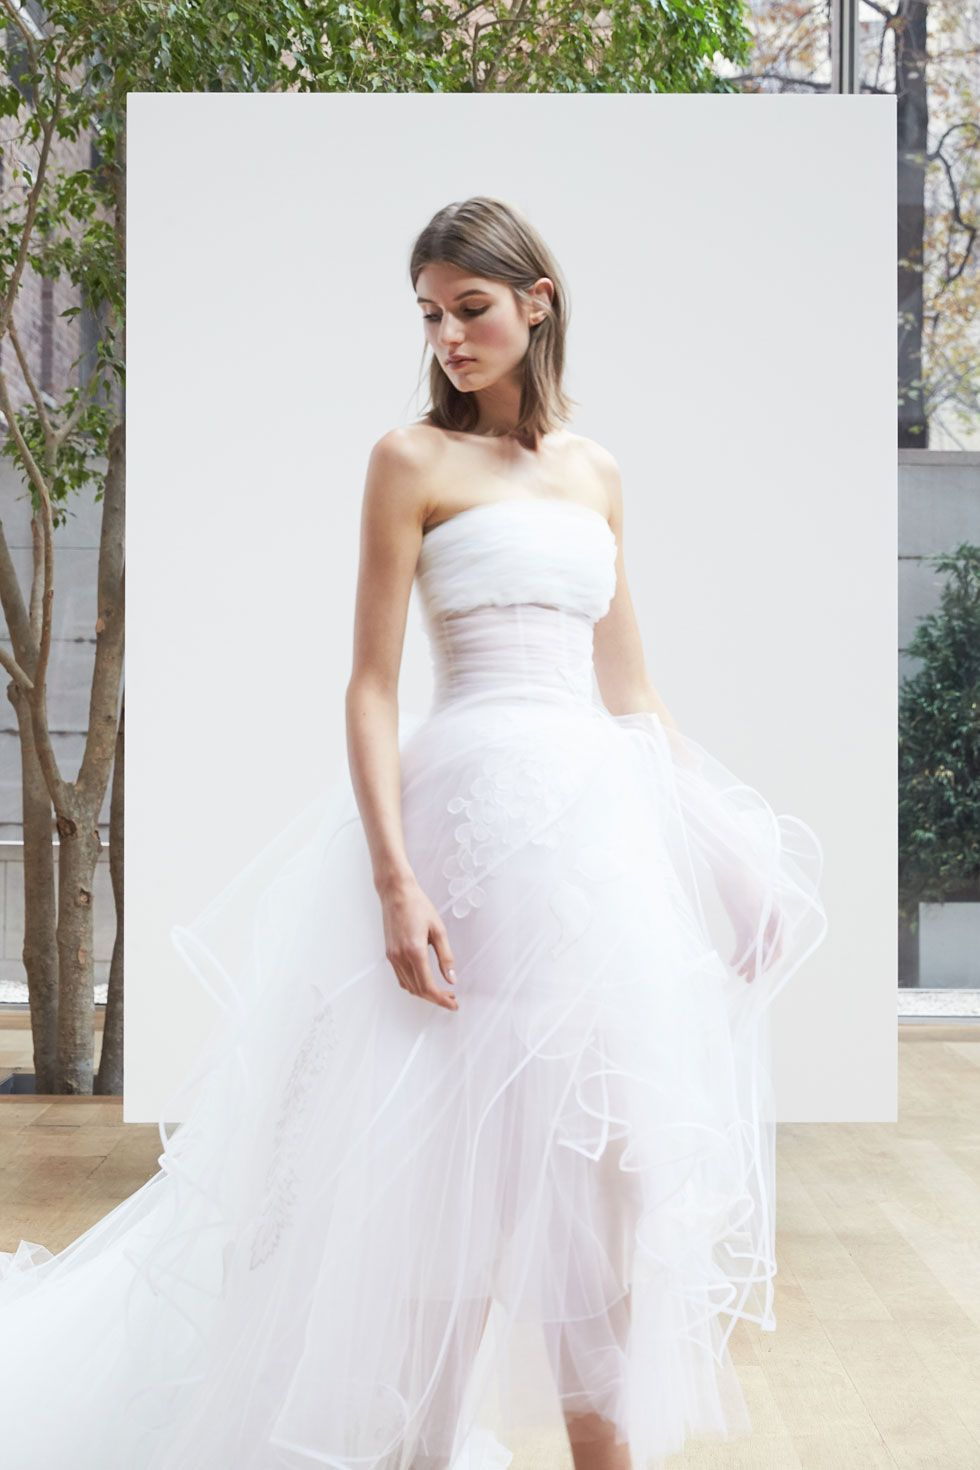 Most expensive wedding dress in the world  Surfus Up The Best In Beach Wedding Dresses  Beach weddings Oscar